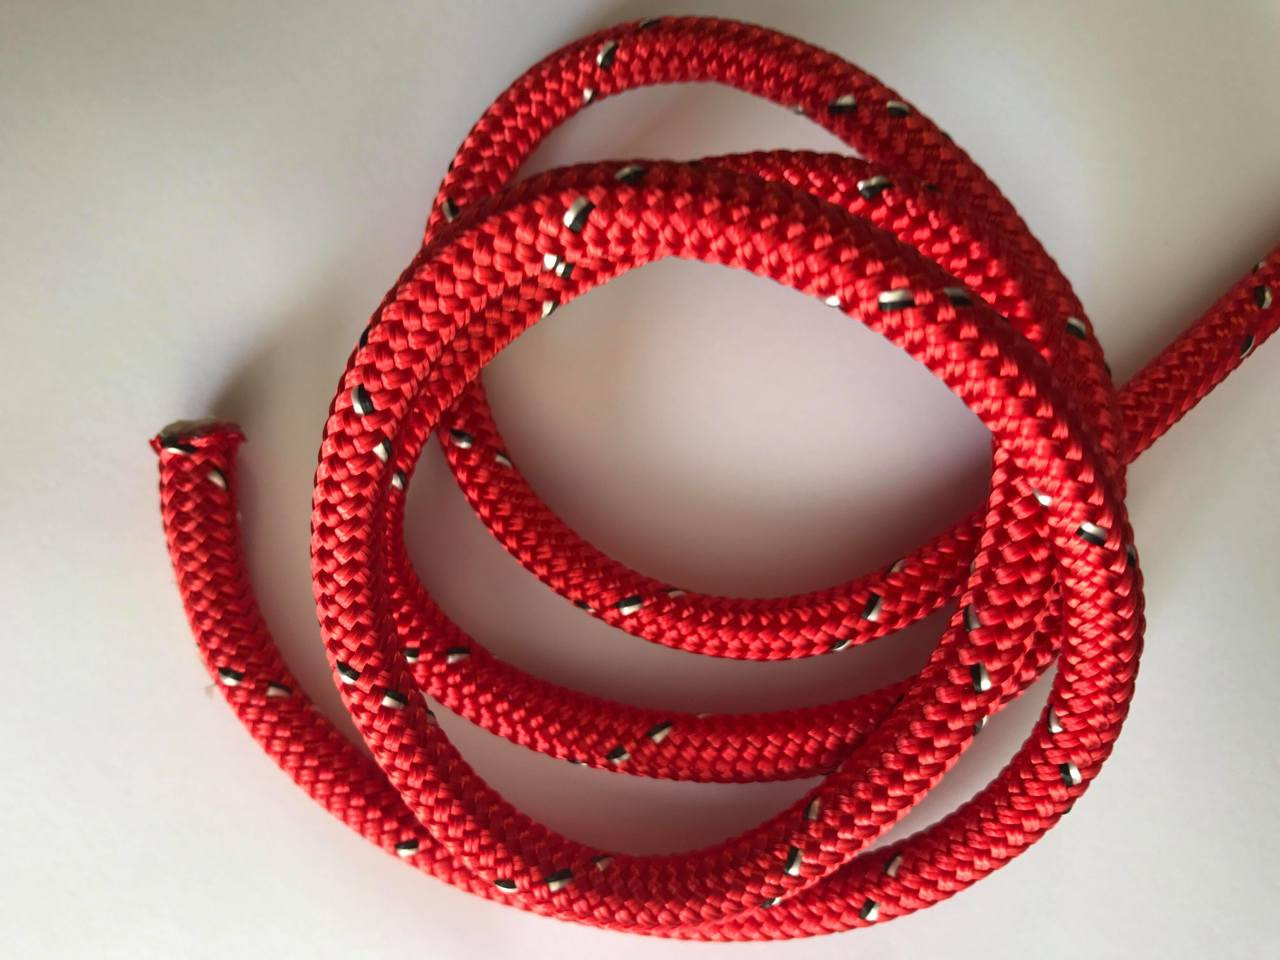 Rope - Spectra Red 8mm x 1metre